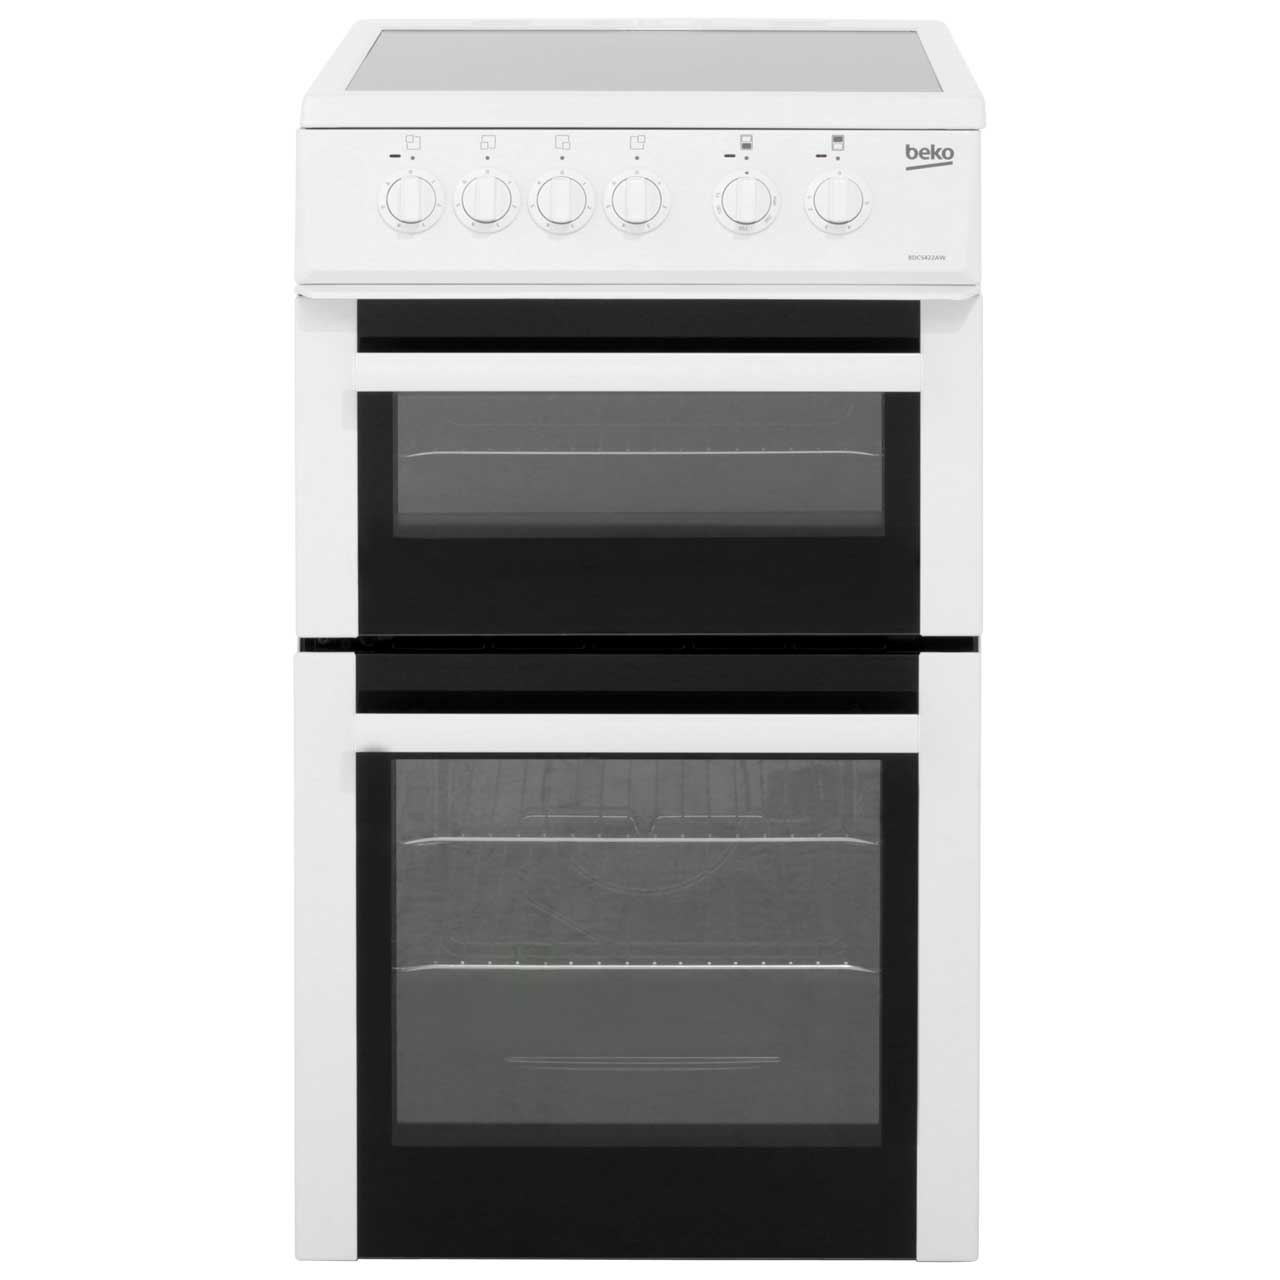 Beko BDC5422AW Electric Cooker with Ceramic Hob - White